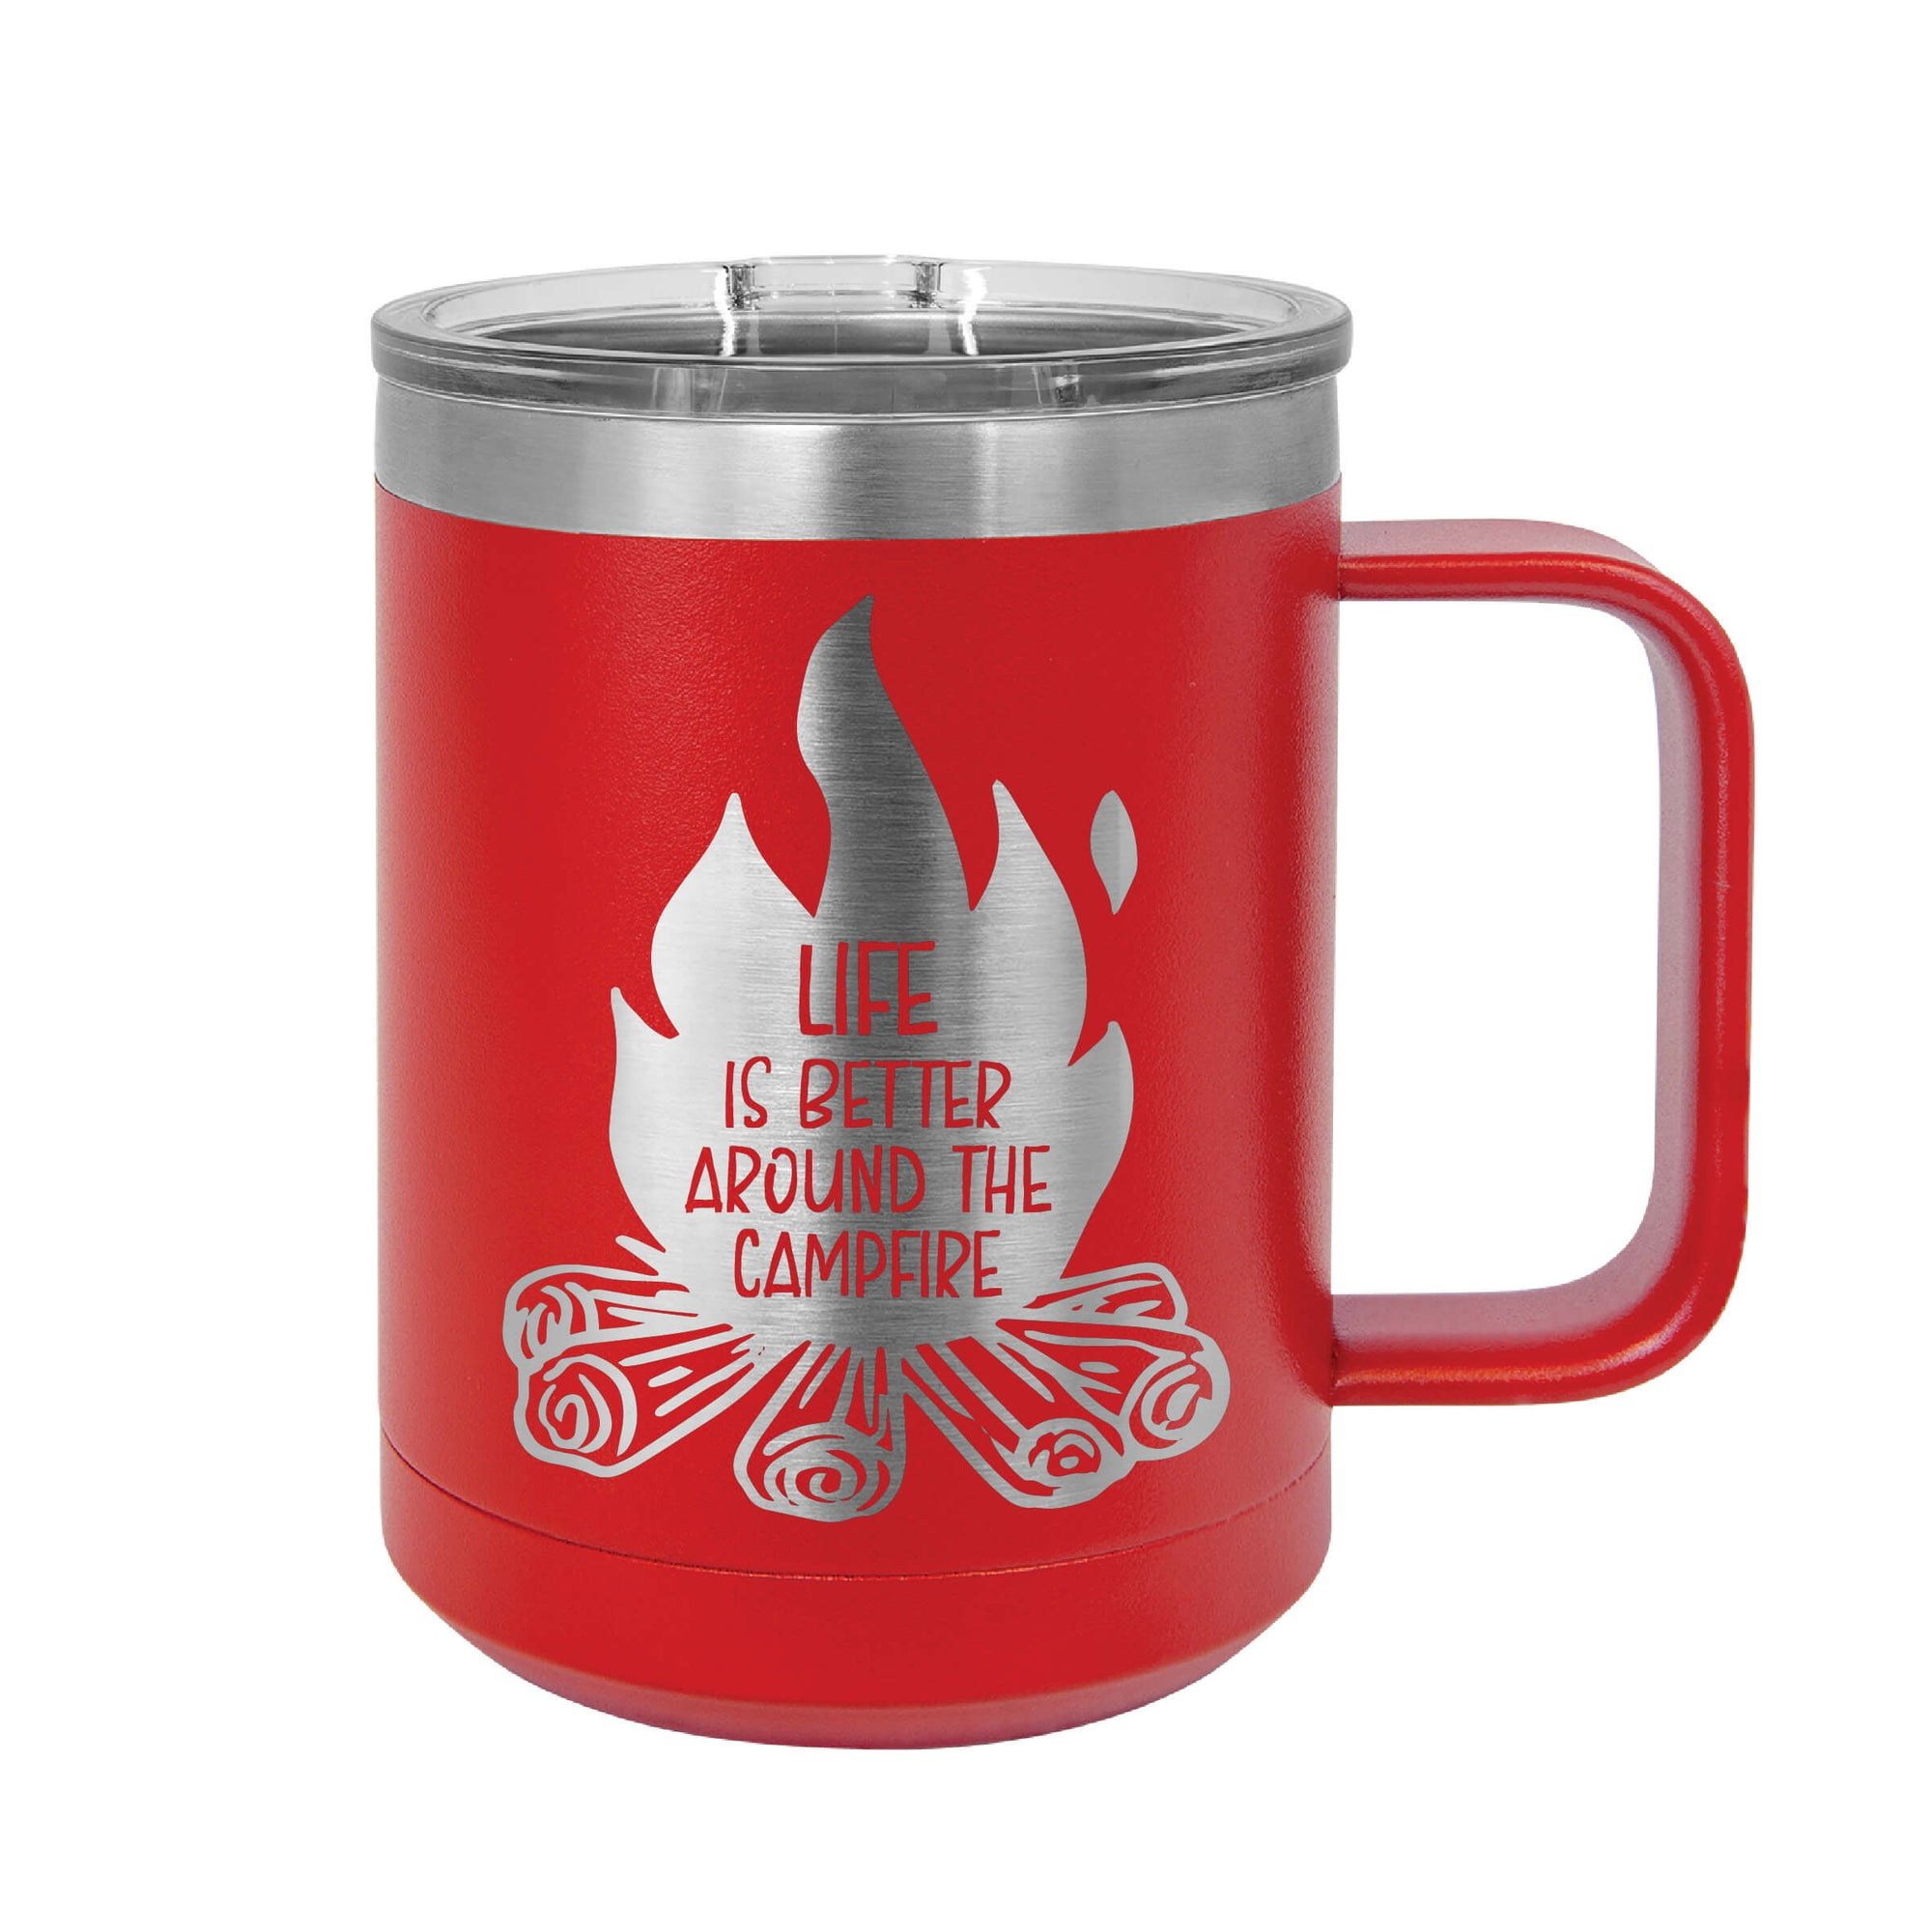 Life is Better Around the Campfire Insulated Mug Tumbler